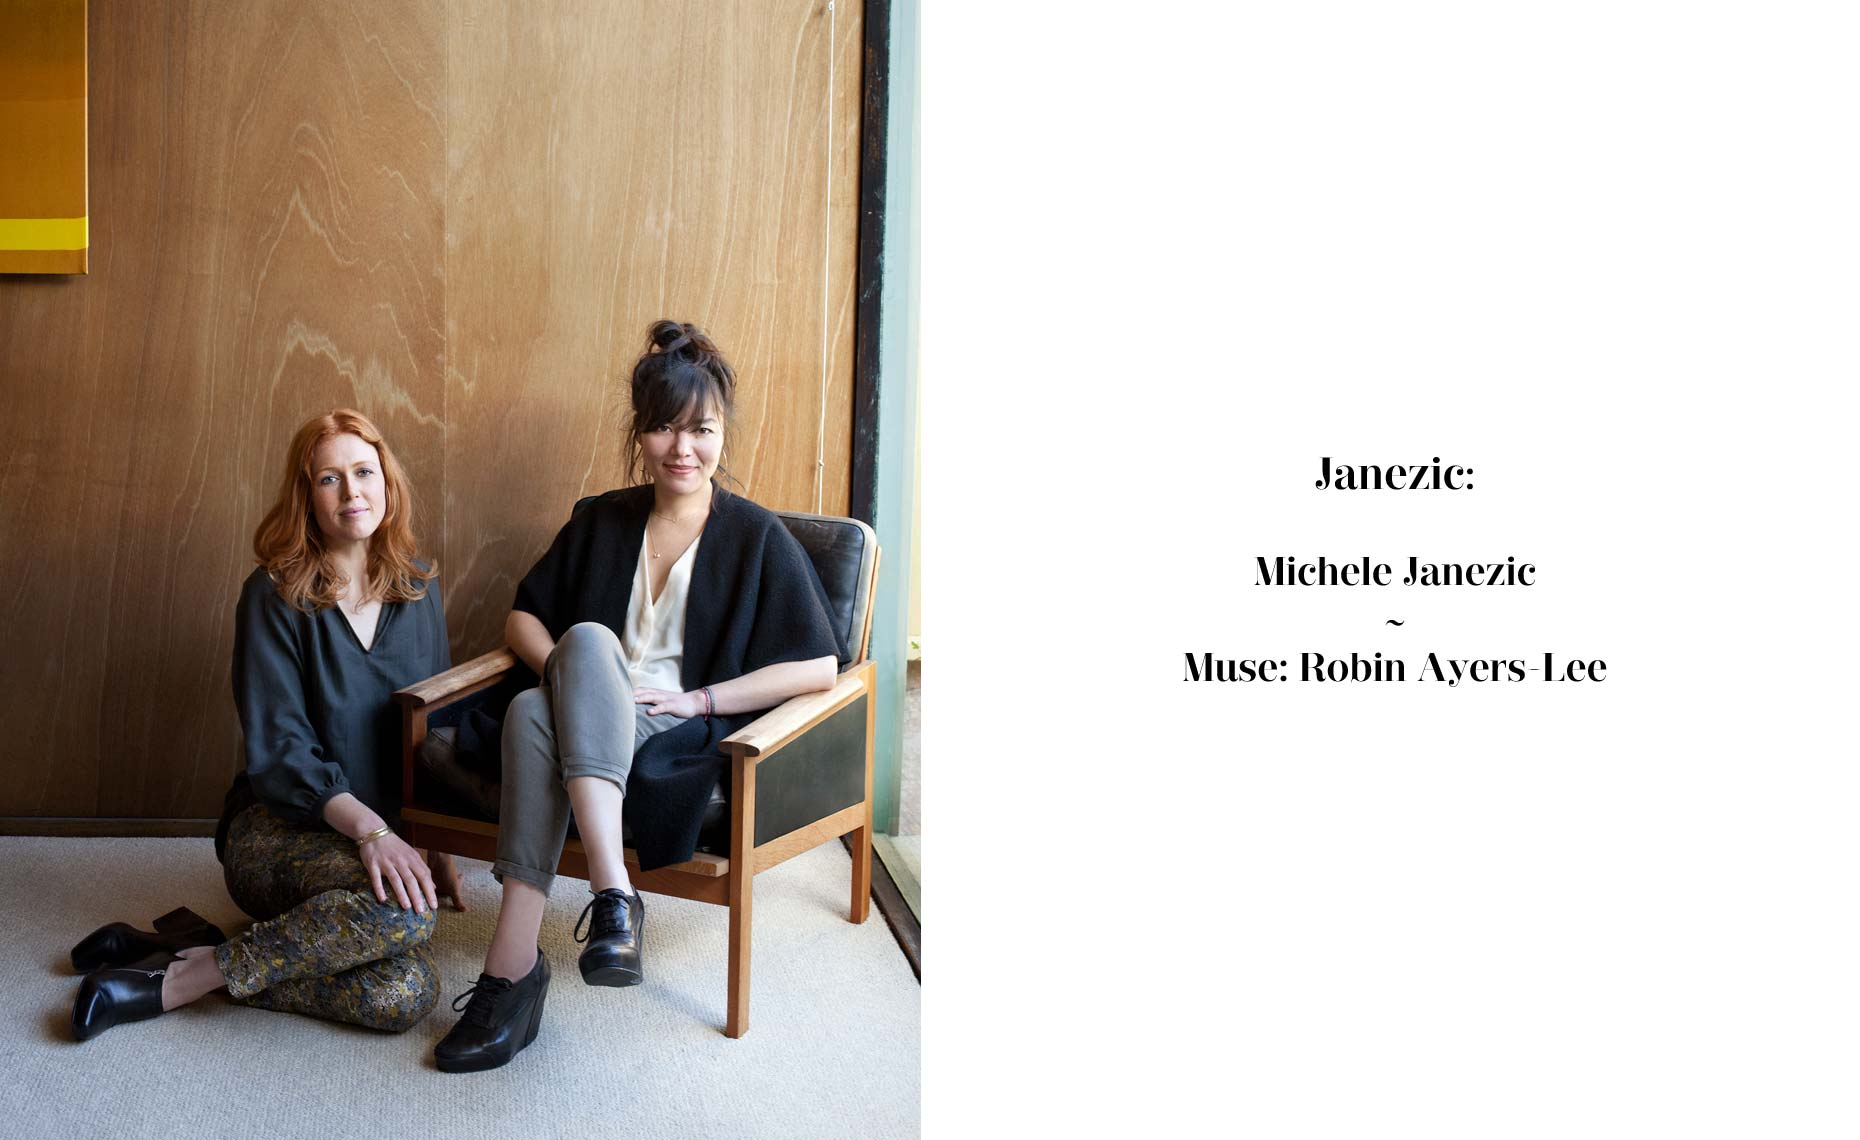 05-michelle-janezic-w-text